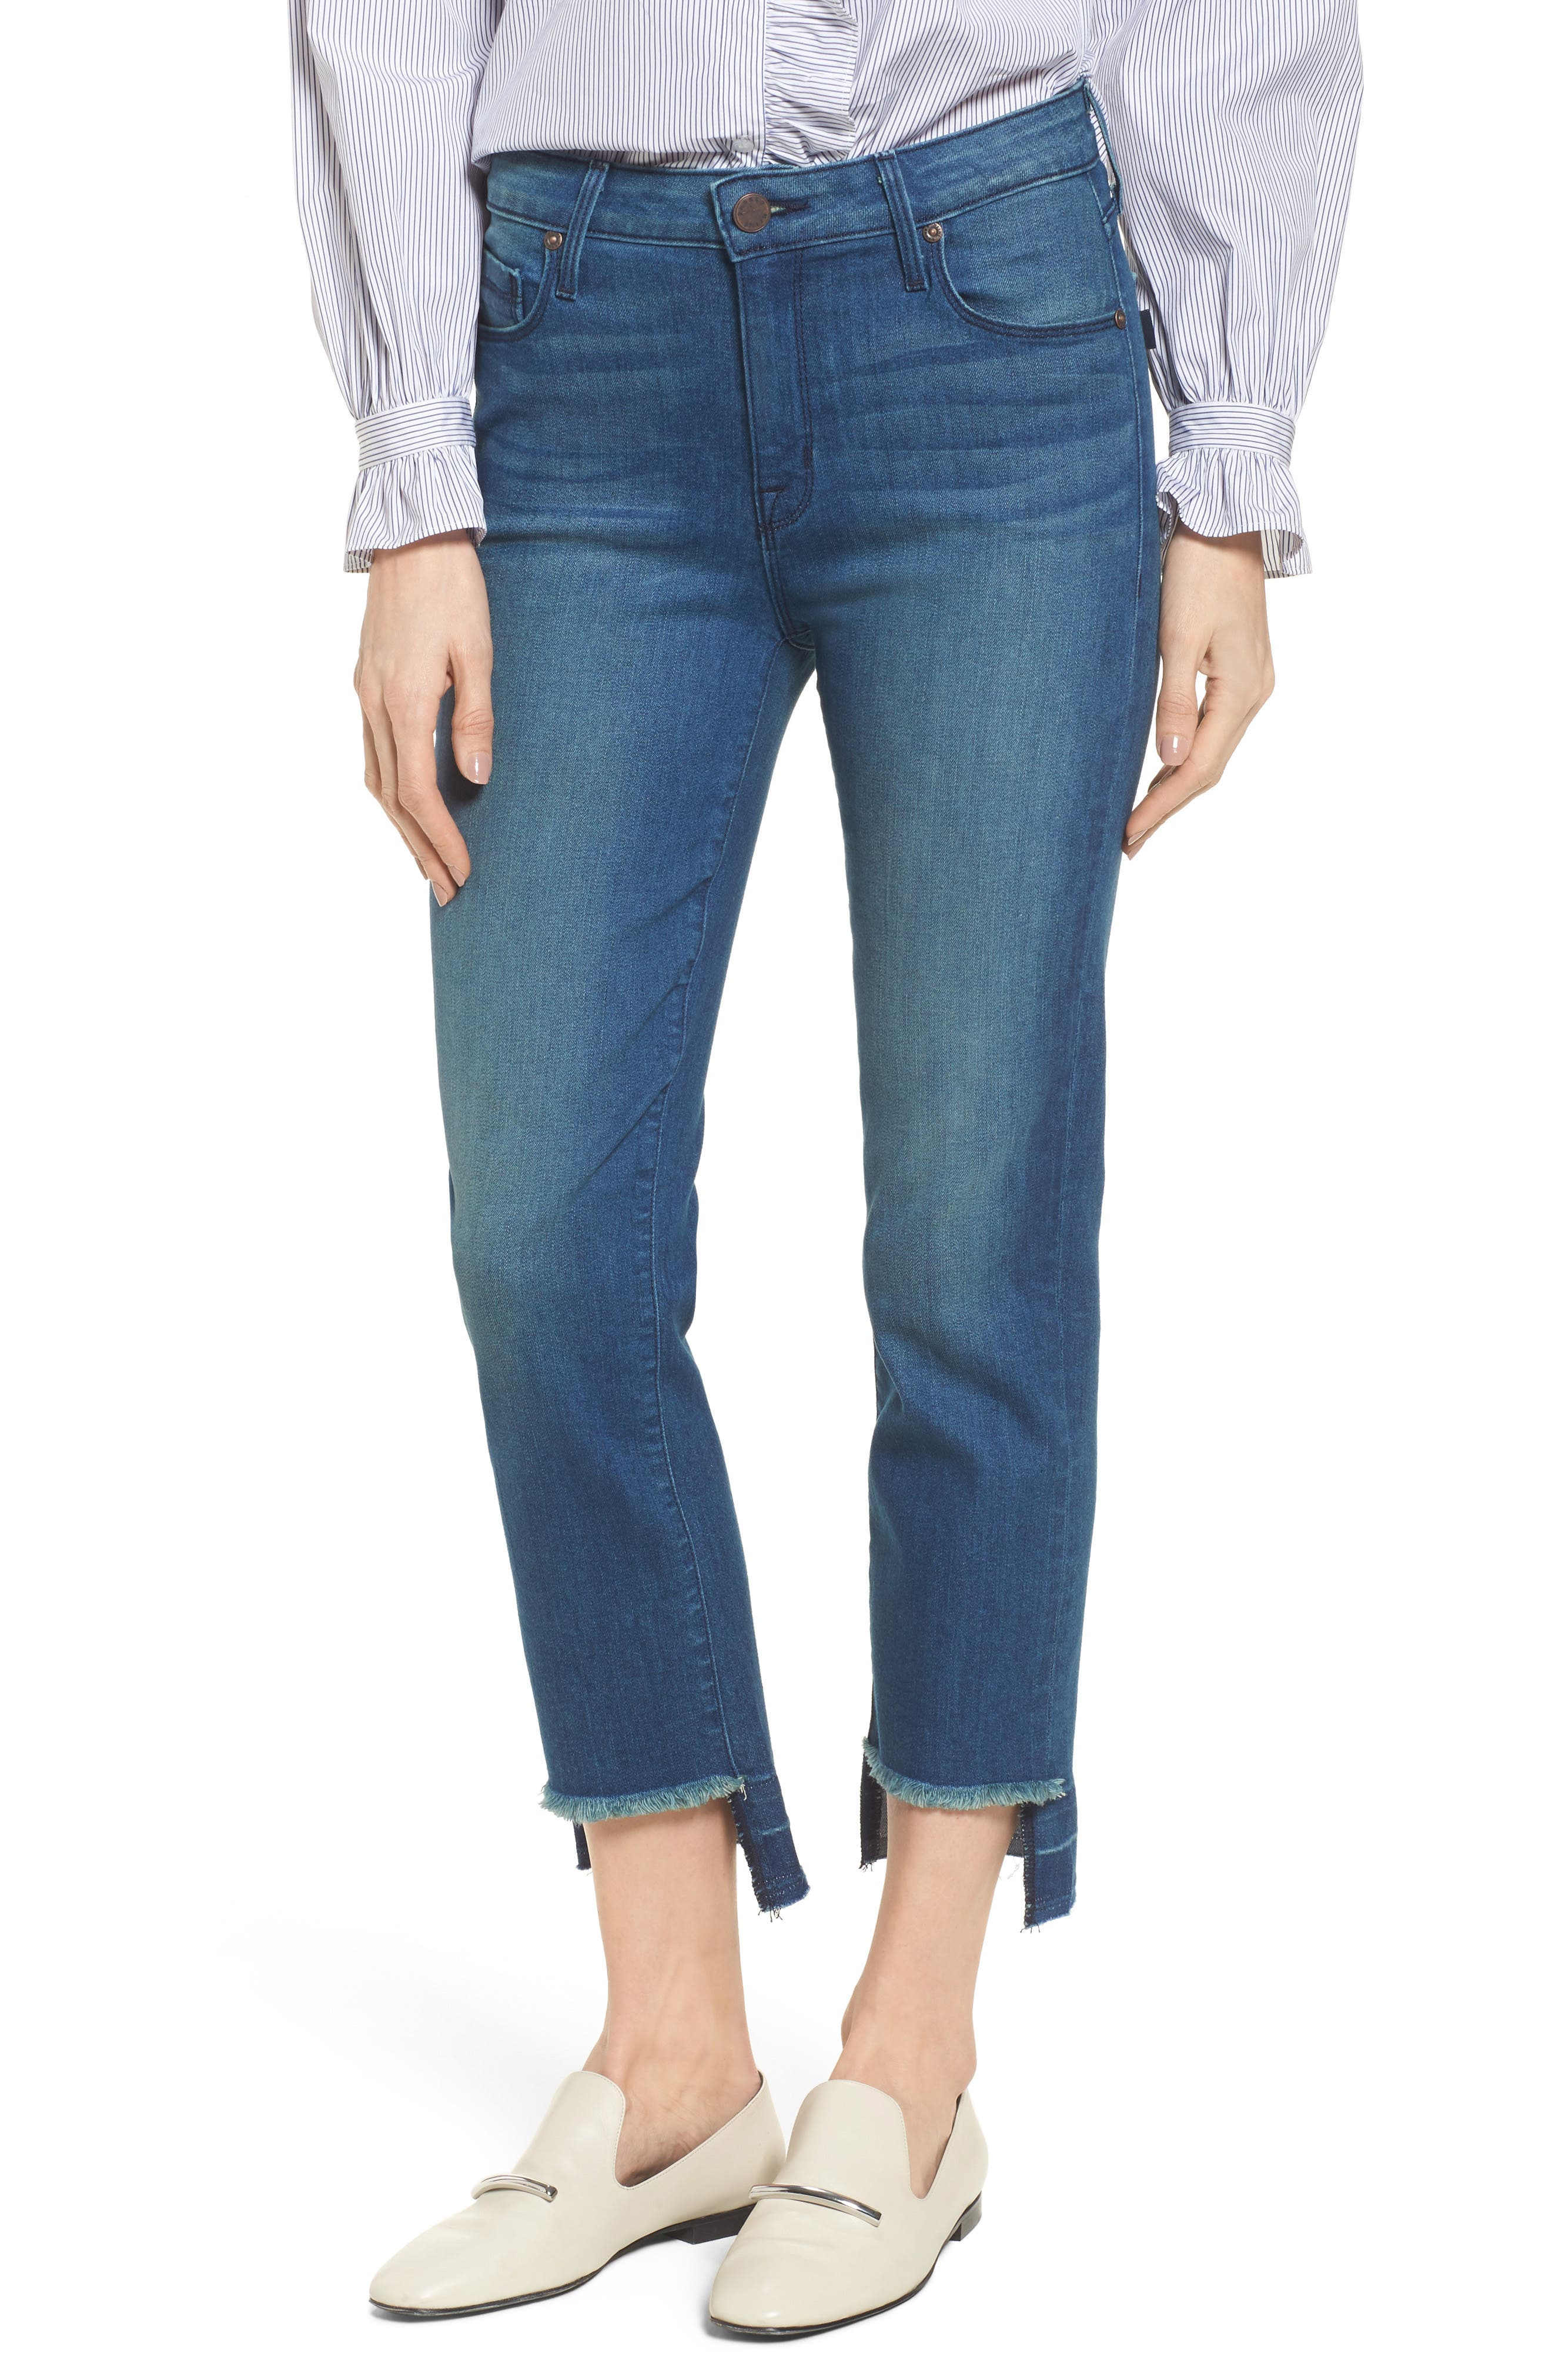 Alternate Image 1 Selected - PARKER SMITH Pin-Up Straight Leg Crop Jeans (Island)